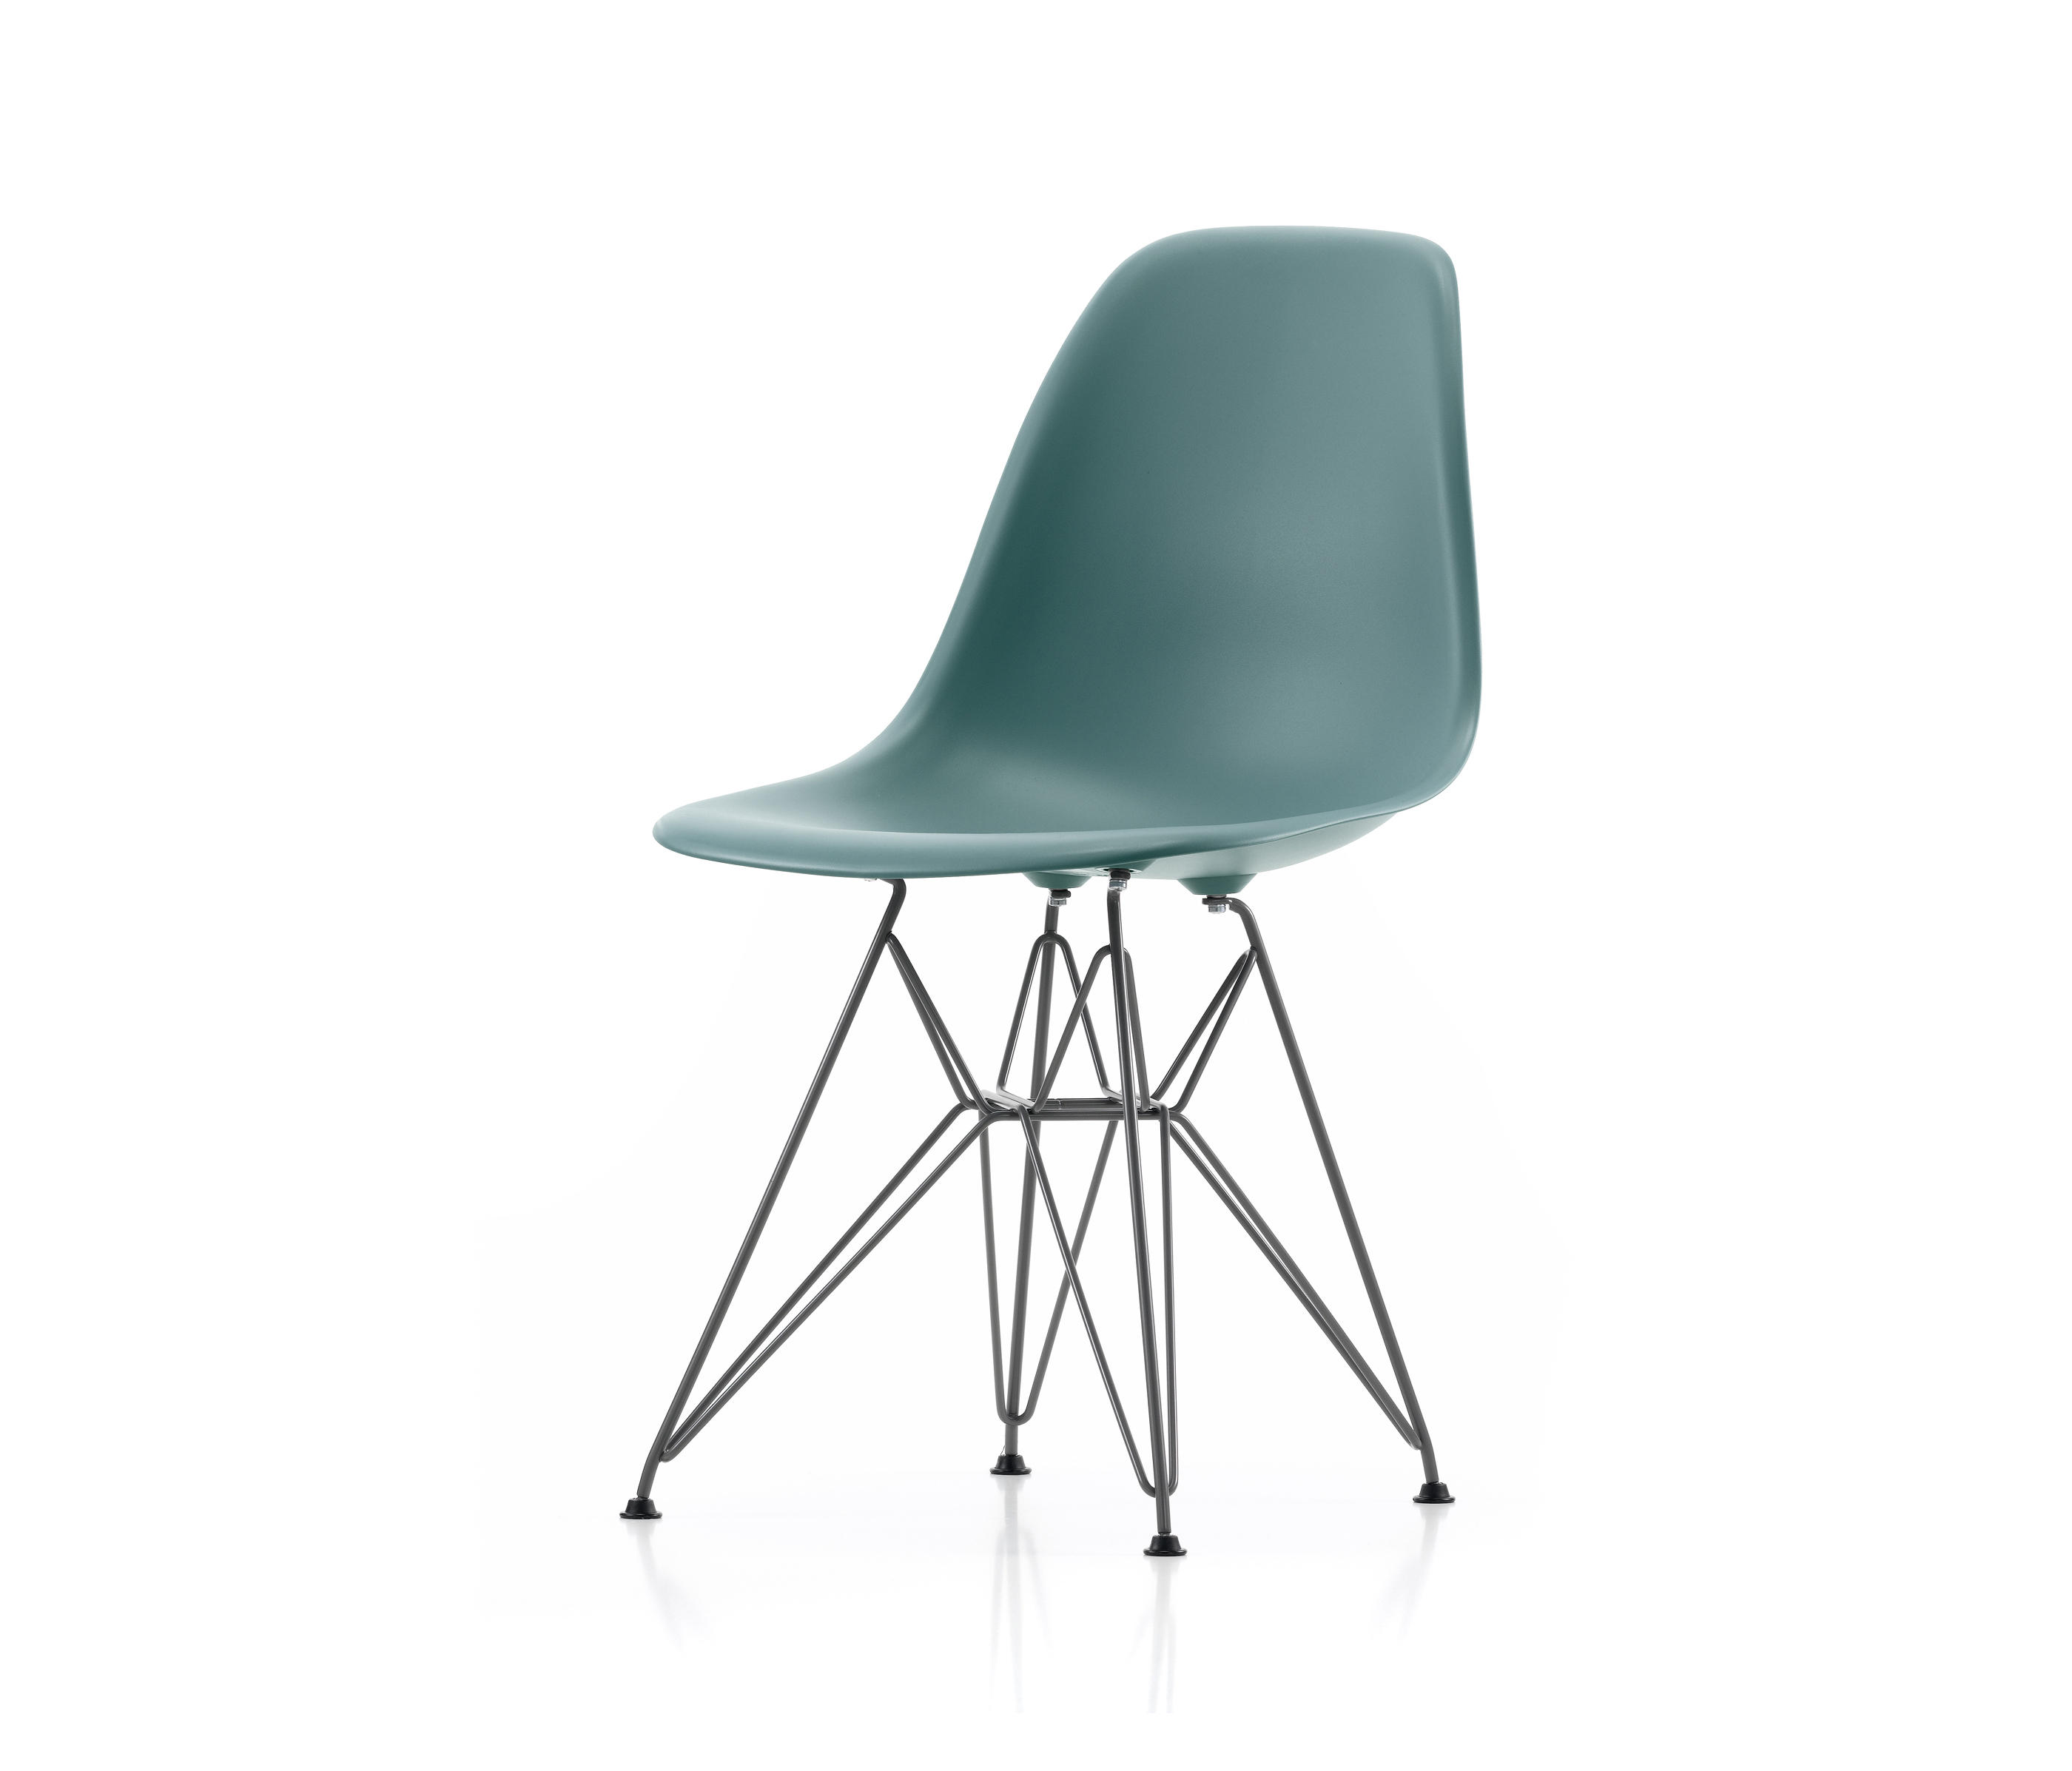 Eames Plastic Chair Eames Plastic Side Chair Dsr Chairs From Vitra Architonic